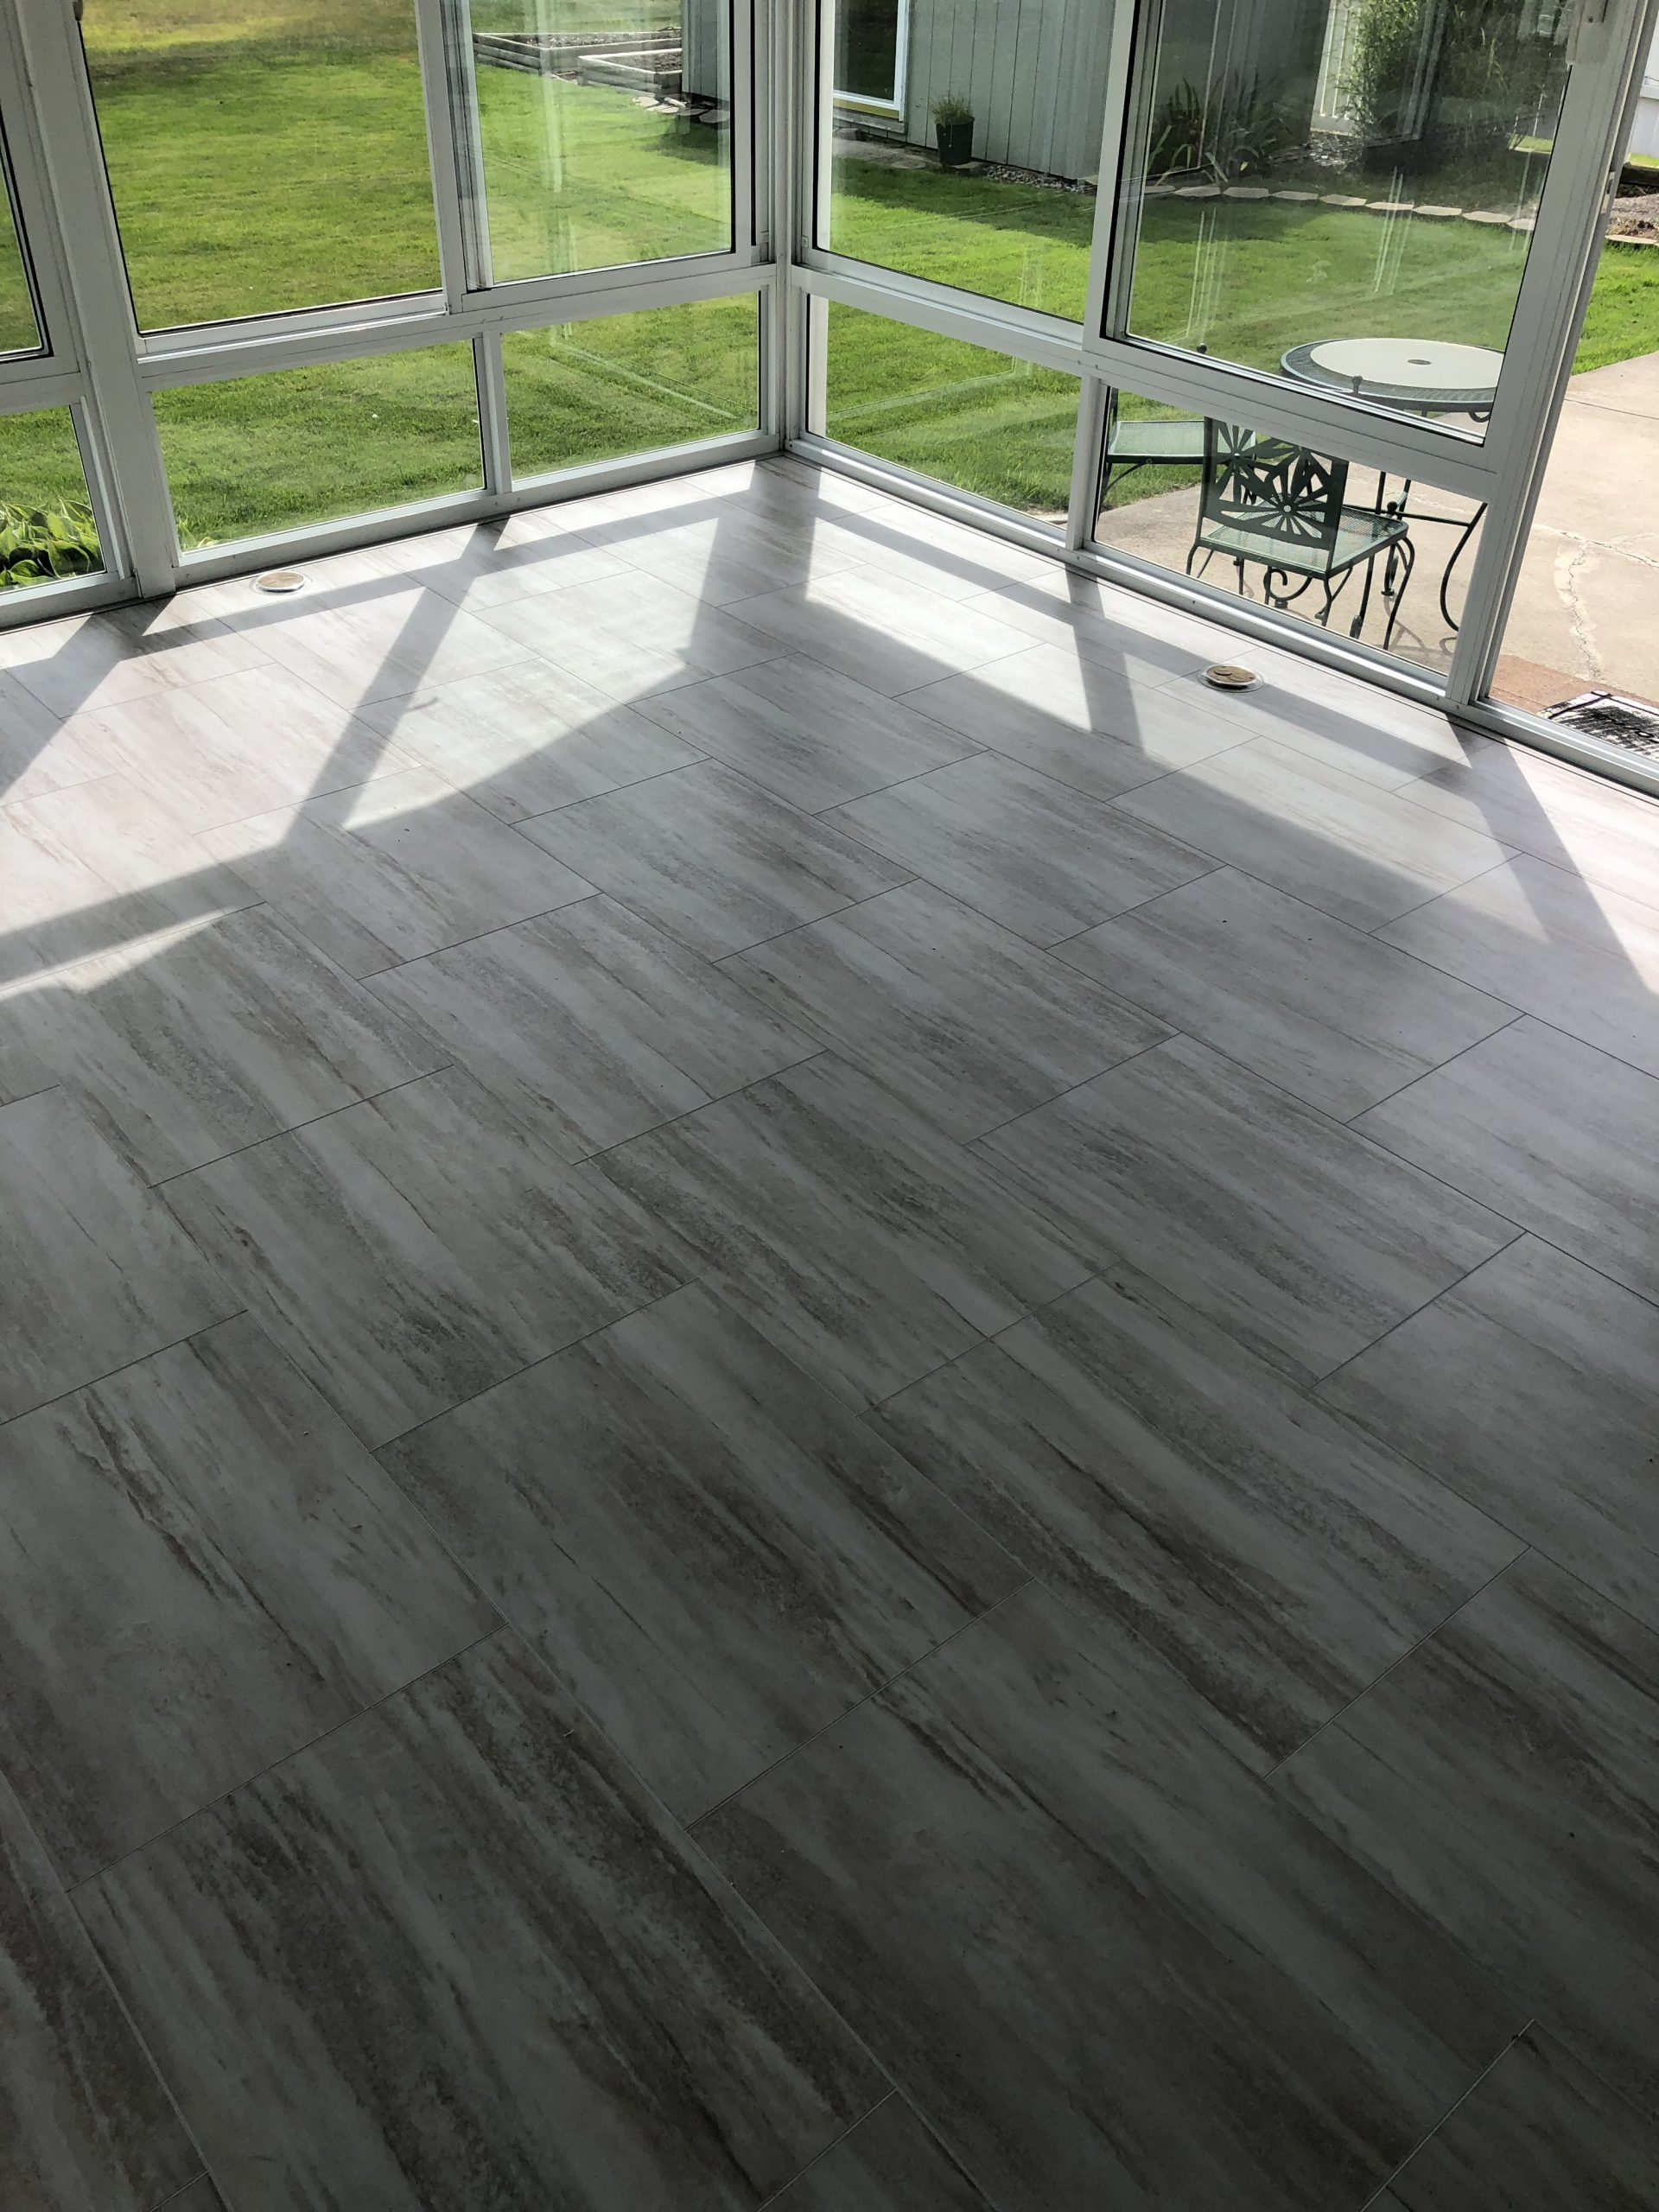 messner-flooring-photos-new-floors-019-1